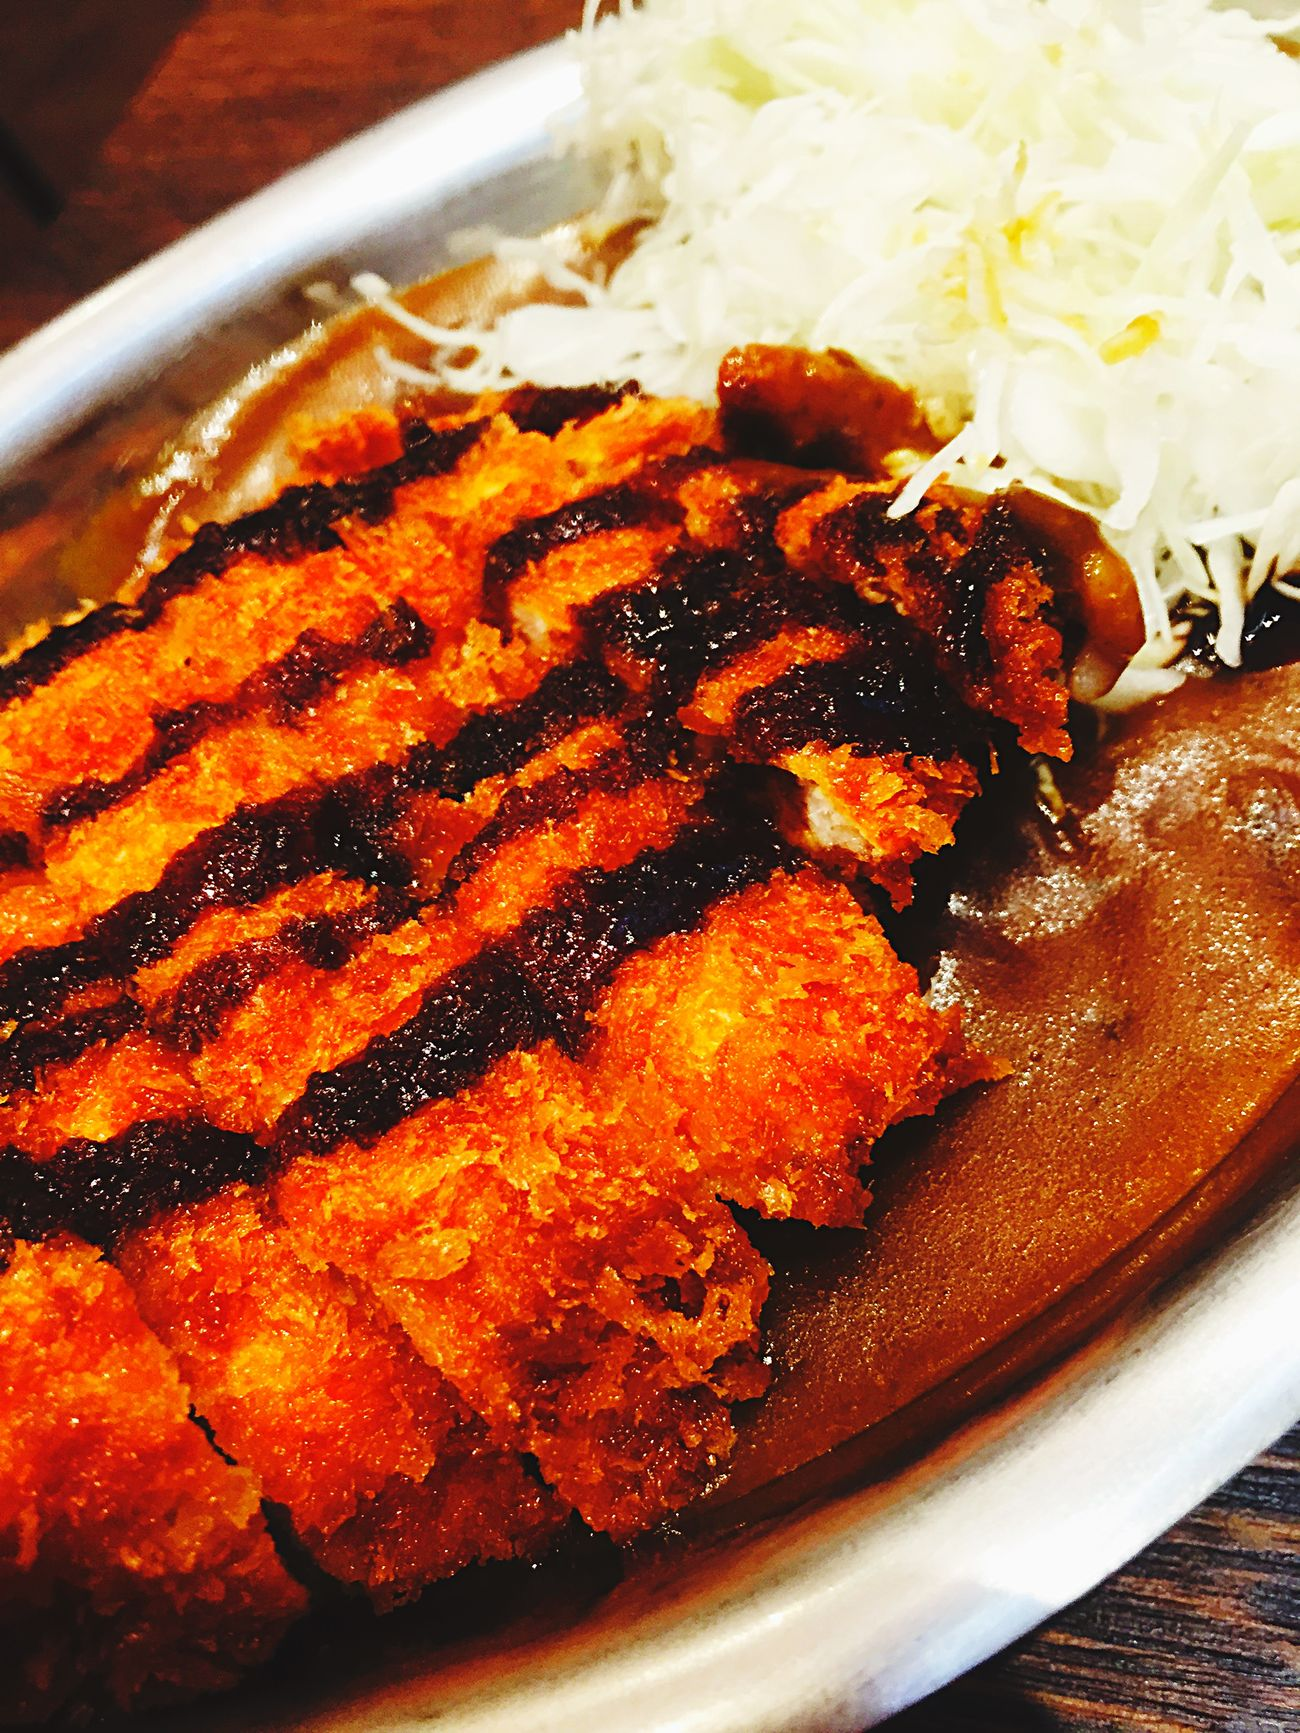 IPhoneography Curry on Chicken Katsu Delicious 金沢カレー Curry's Champion Foodporn in Kanazawa-shi Japan